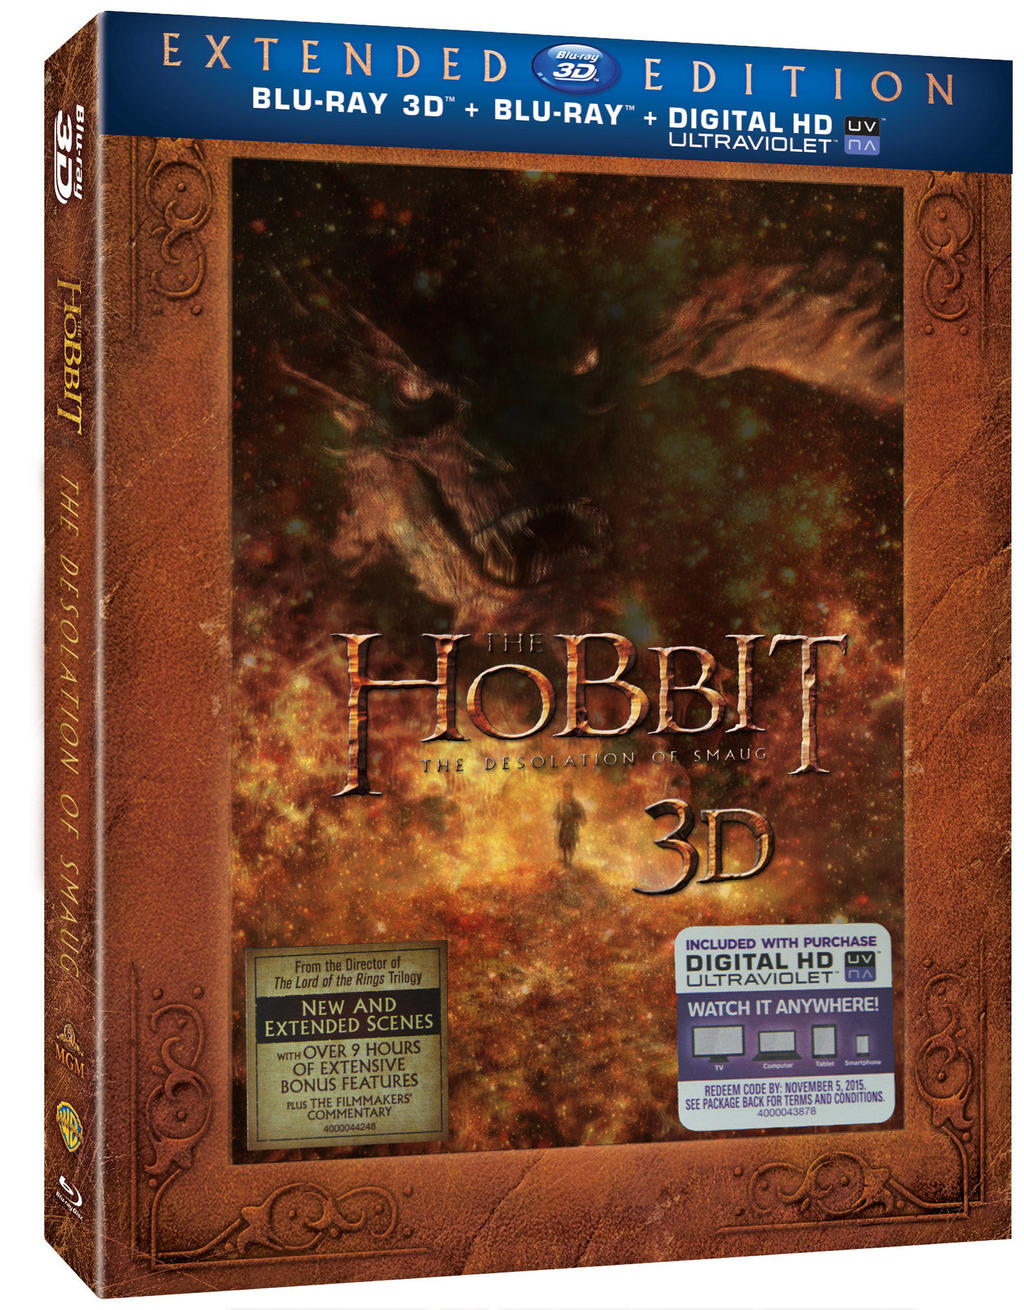 The Hobbit: The Desolation Of Smaug - Extended Edition Blu ...